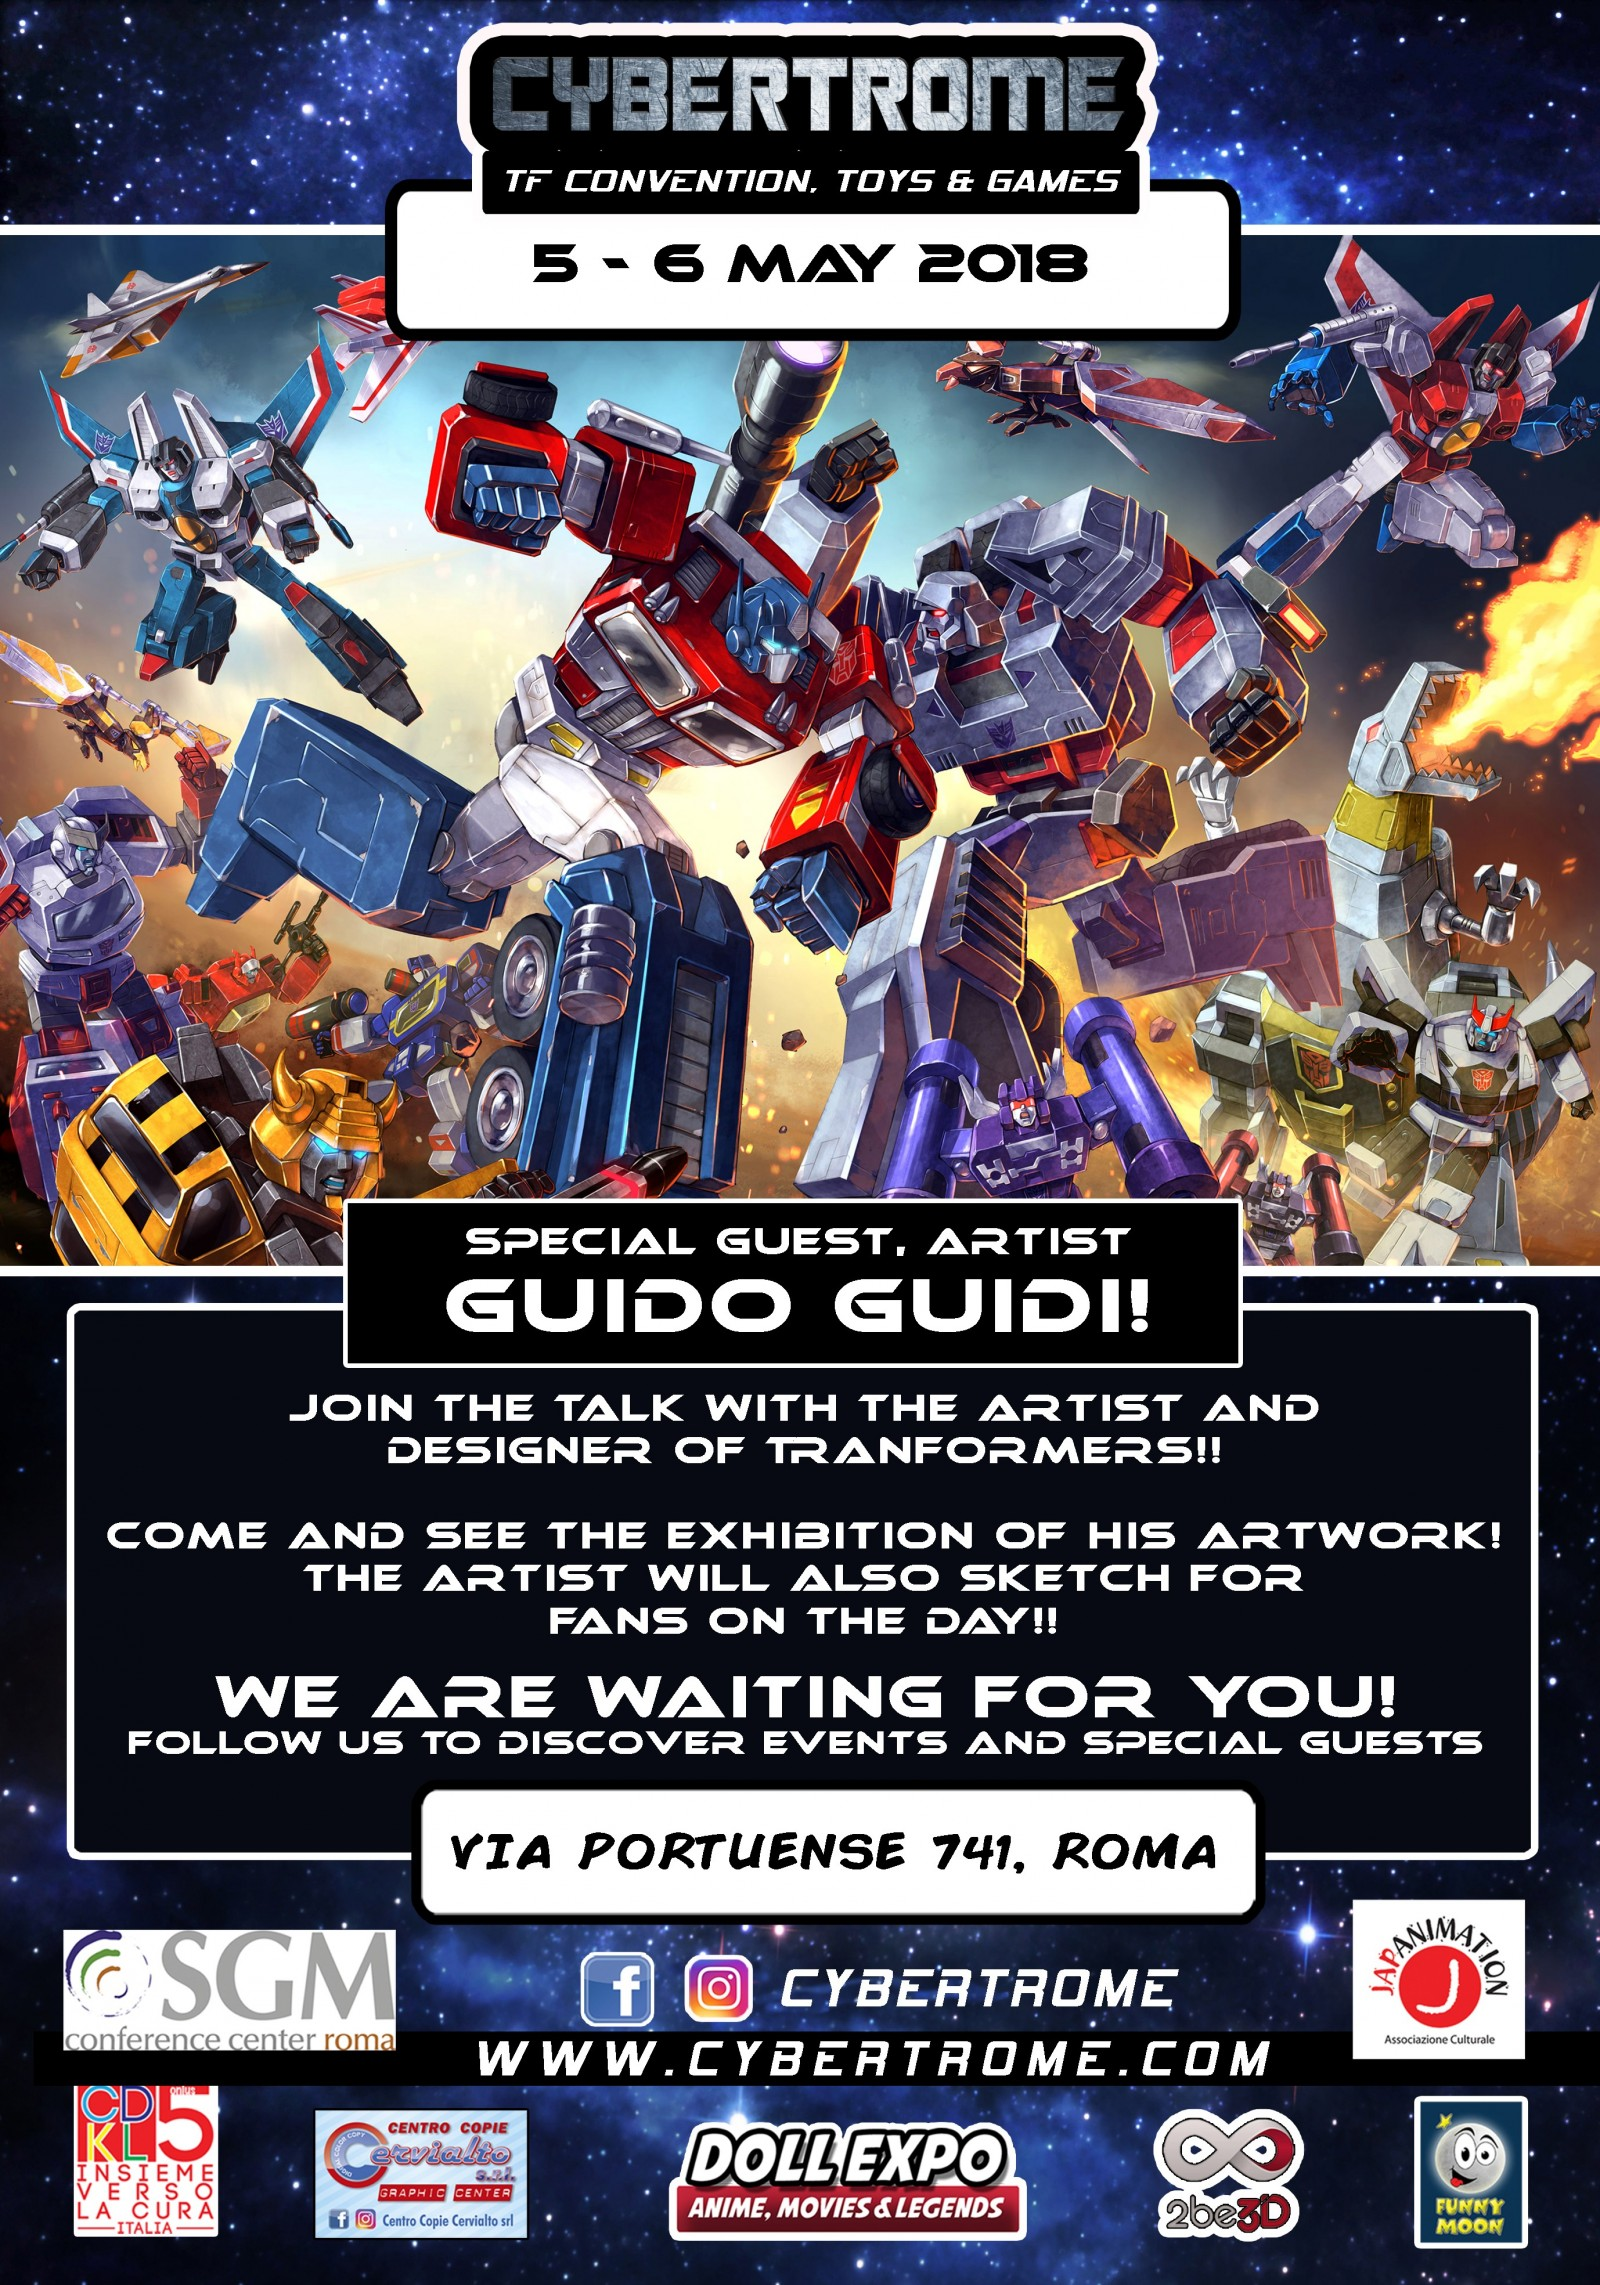 Transformers News: Cybertrome 2018 - 5-6 May, Rome, Italy